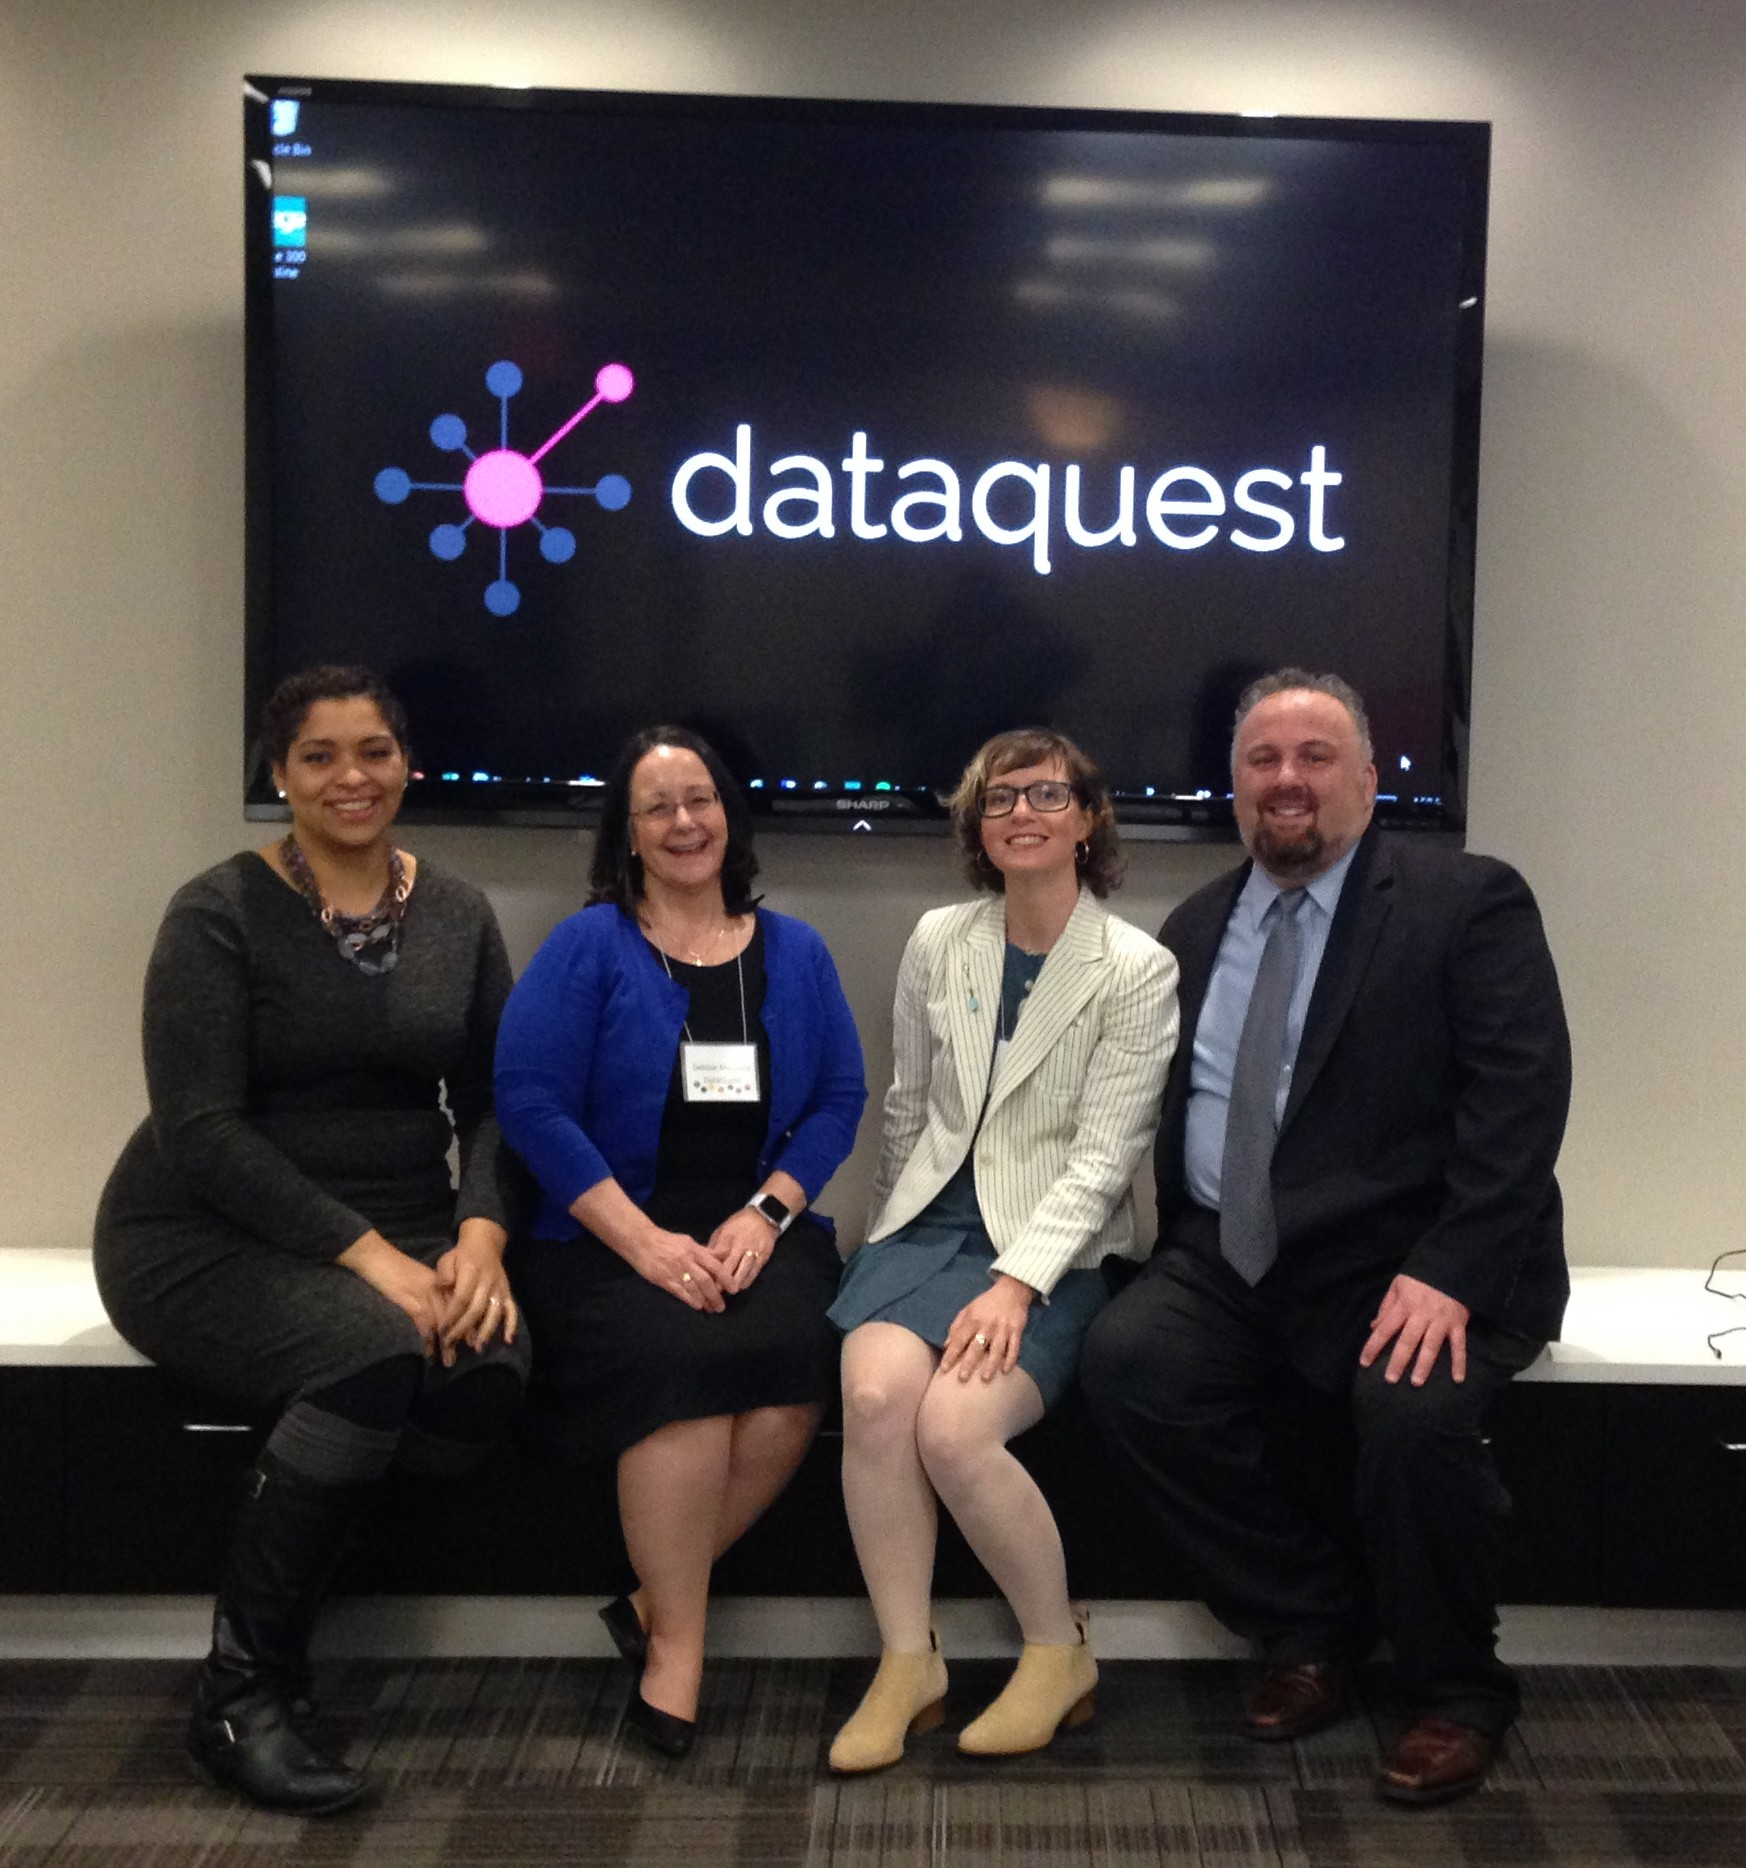 Marga Englehardt, Debbie Mazzullo, Arline Welty and Mark Binkley of DataQuest, Inc. at the Chicago Customer Event